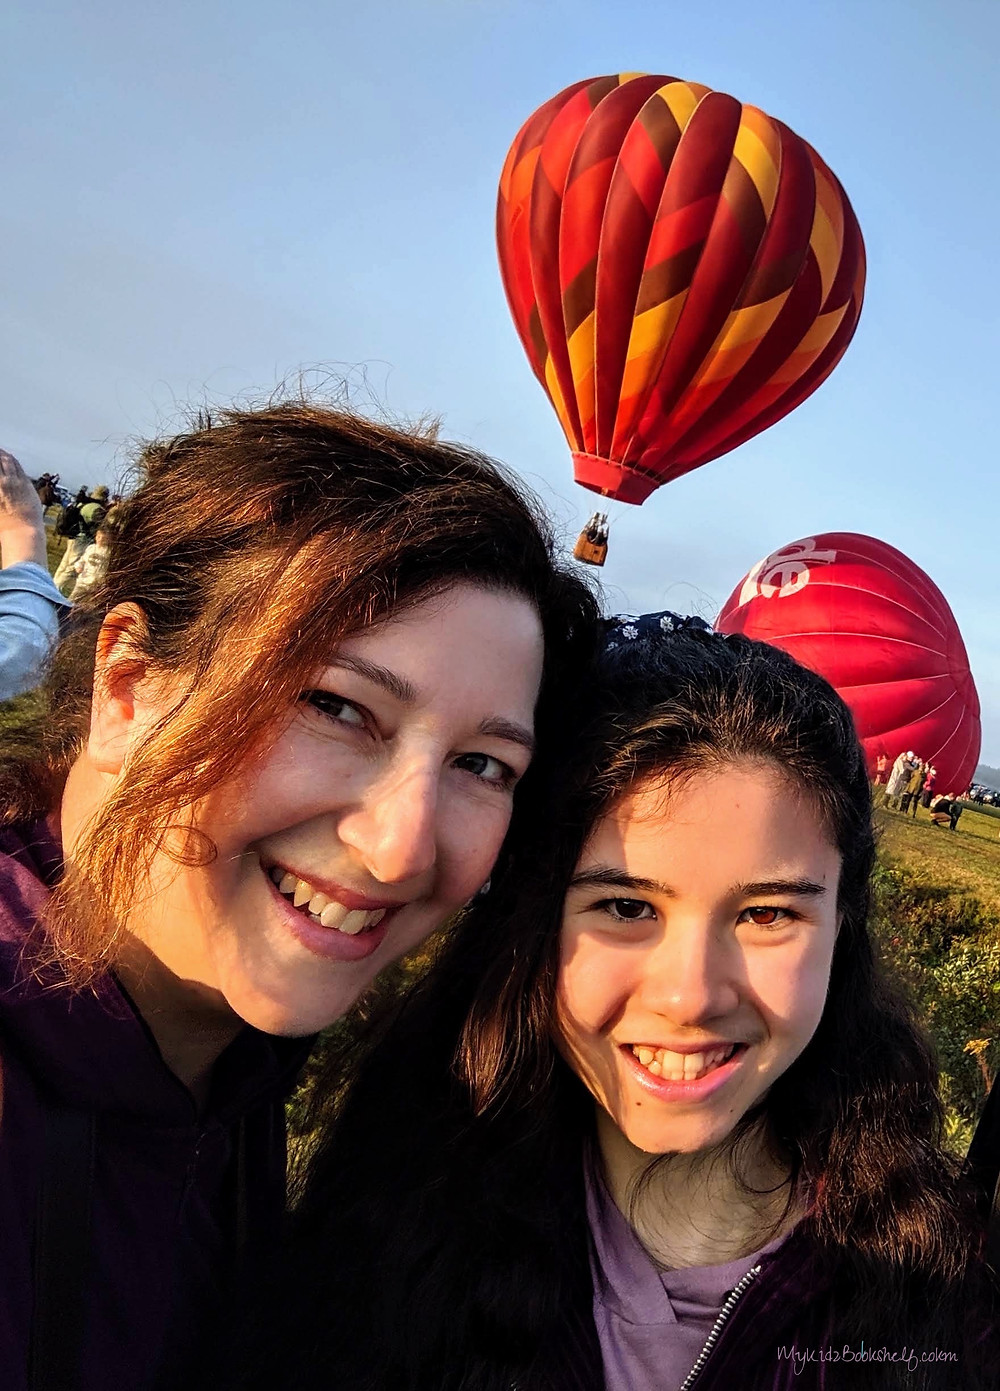 Selfie-This was the 48th annual festival . A free event, (they do accept and appreciate donations), they've become well-known for all the breathtaking balloons featured!